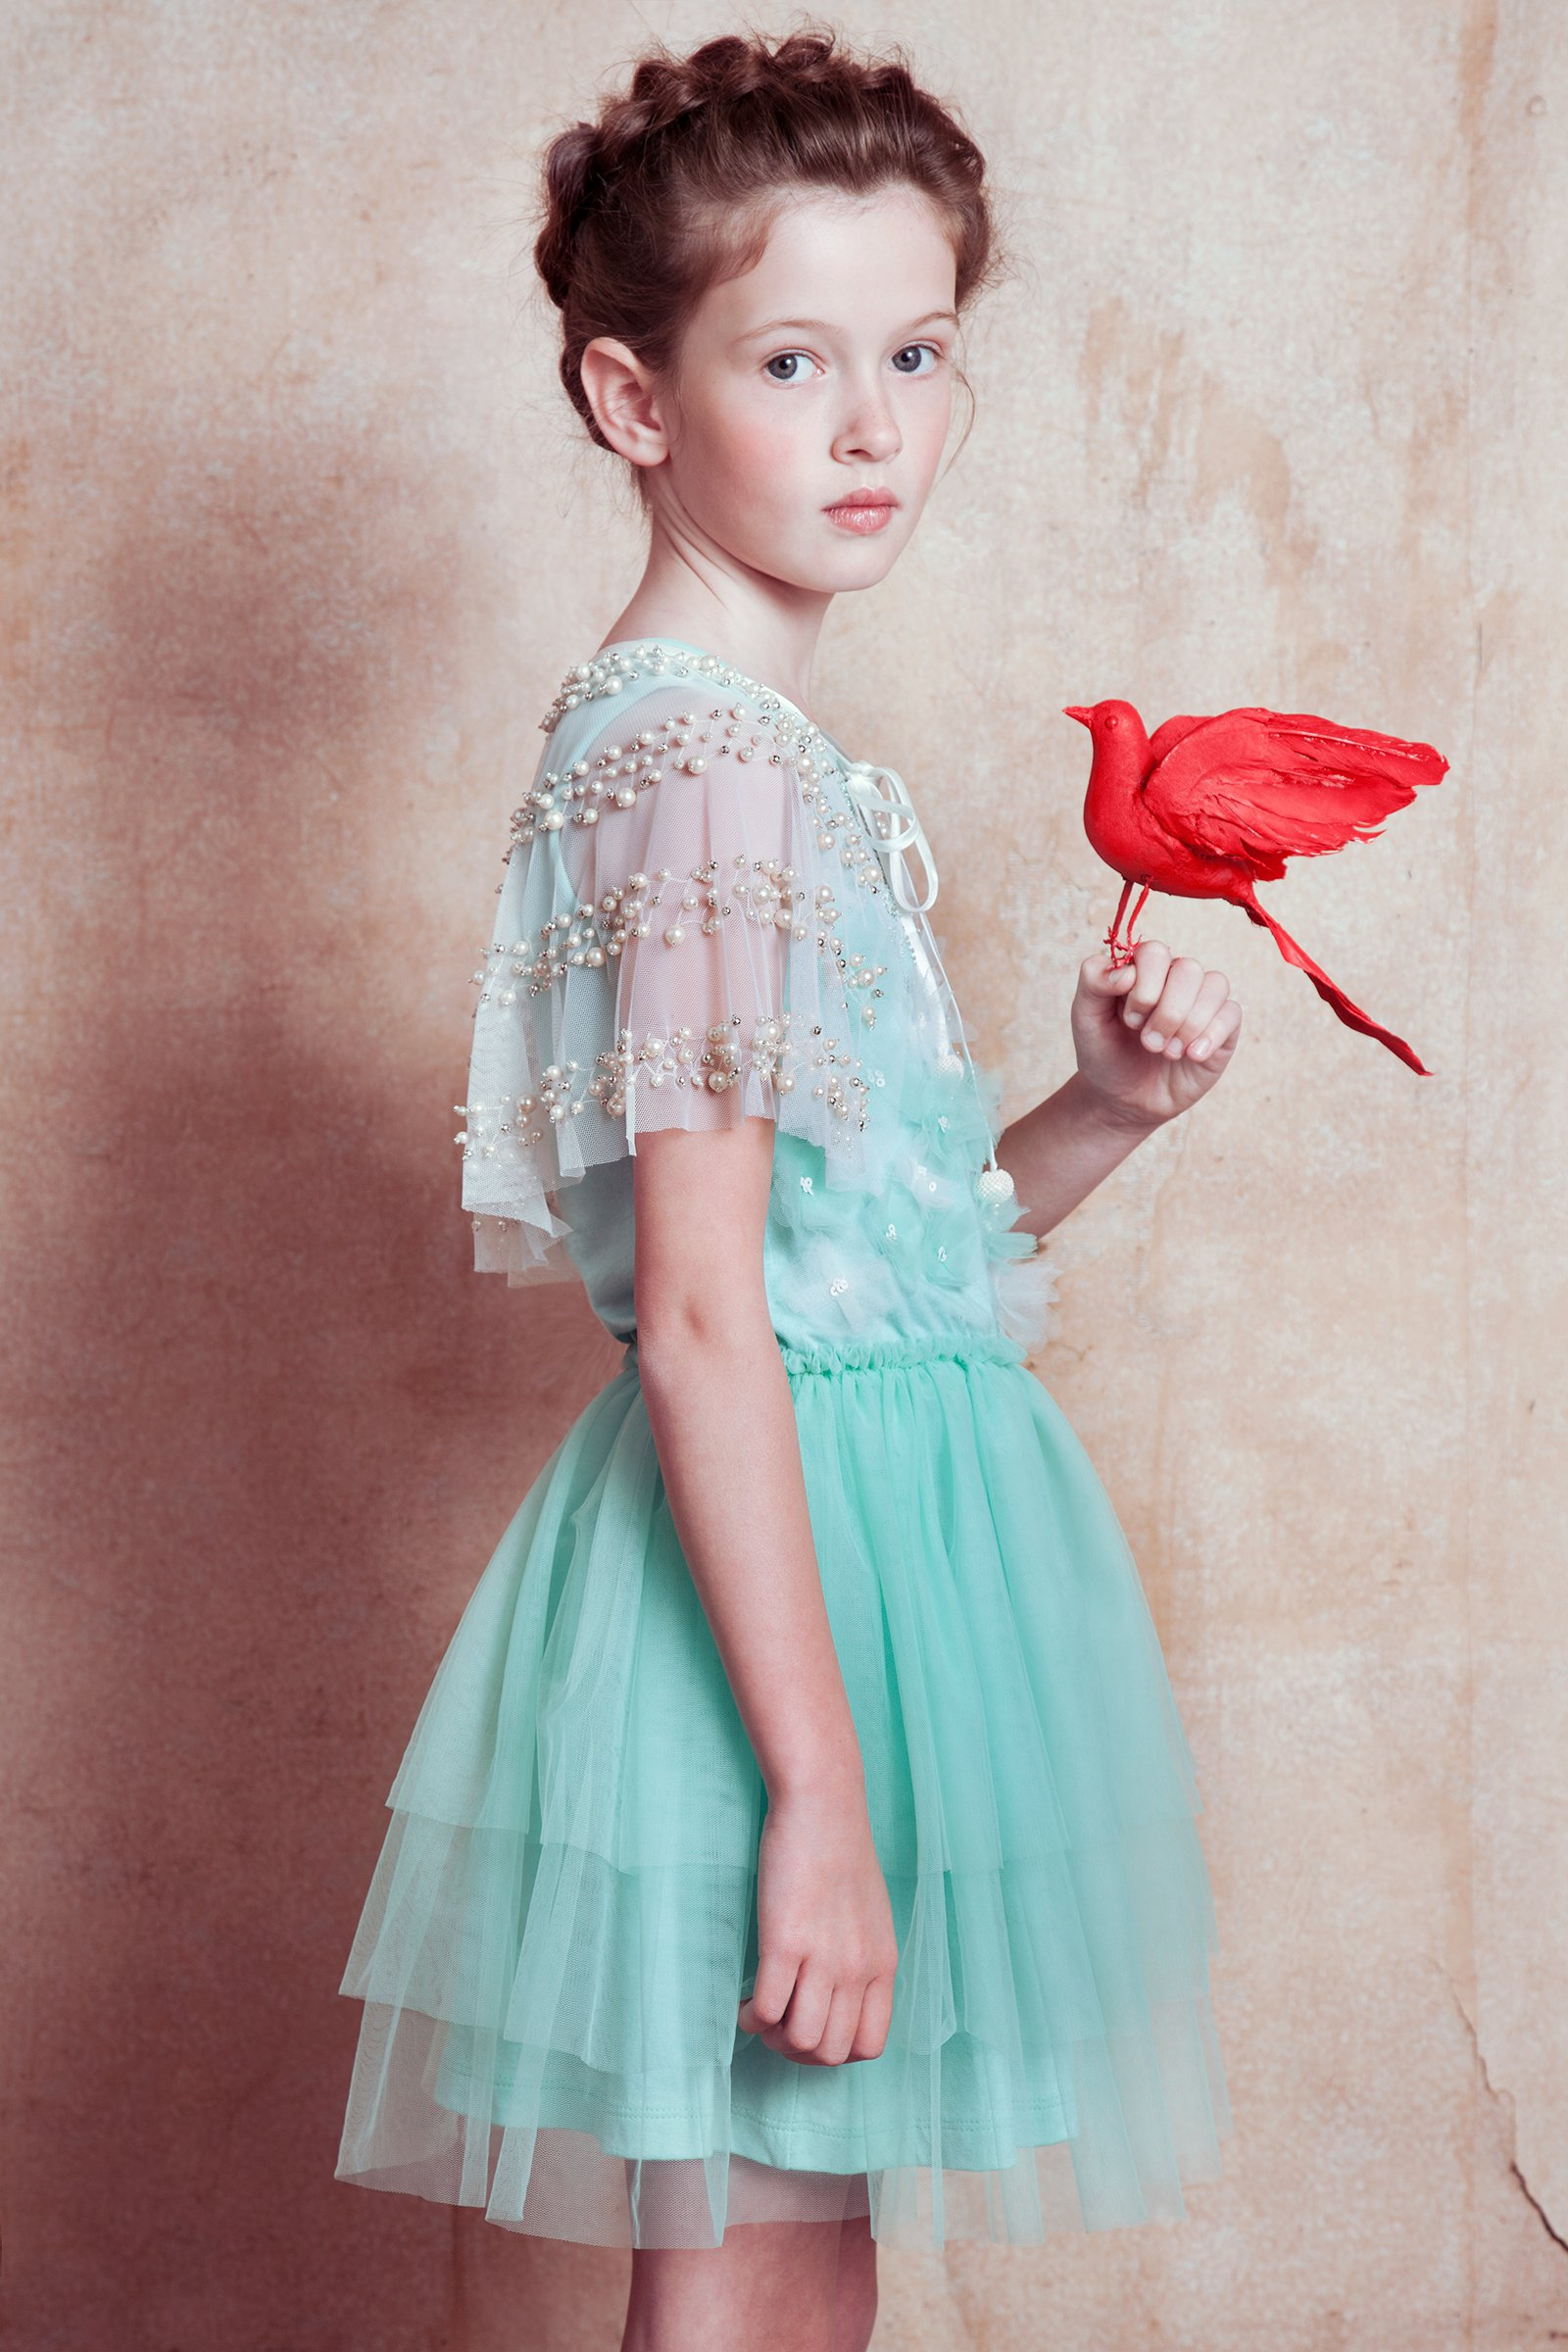 Tutu du Monde Flight of Fancy Turquoise Flower Girl Dress